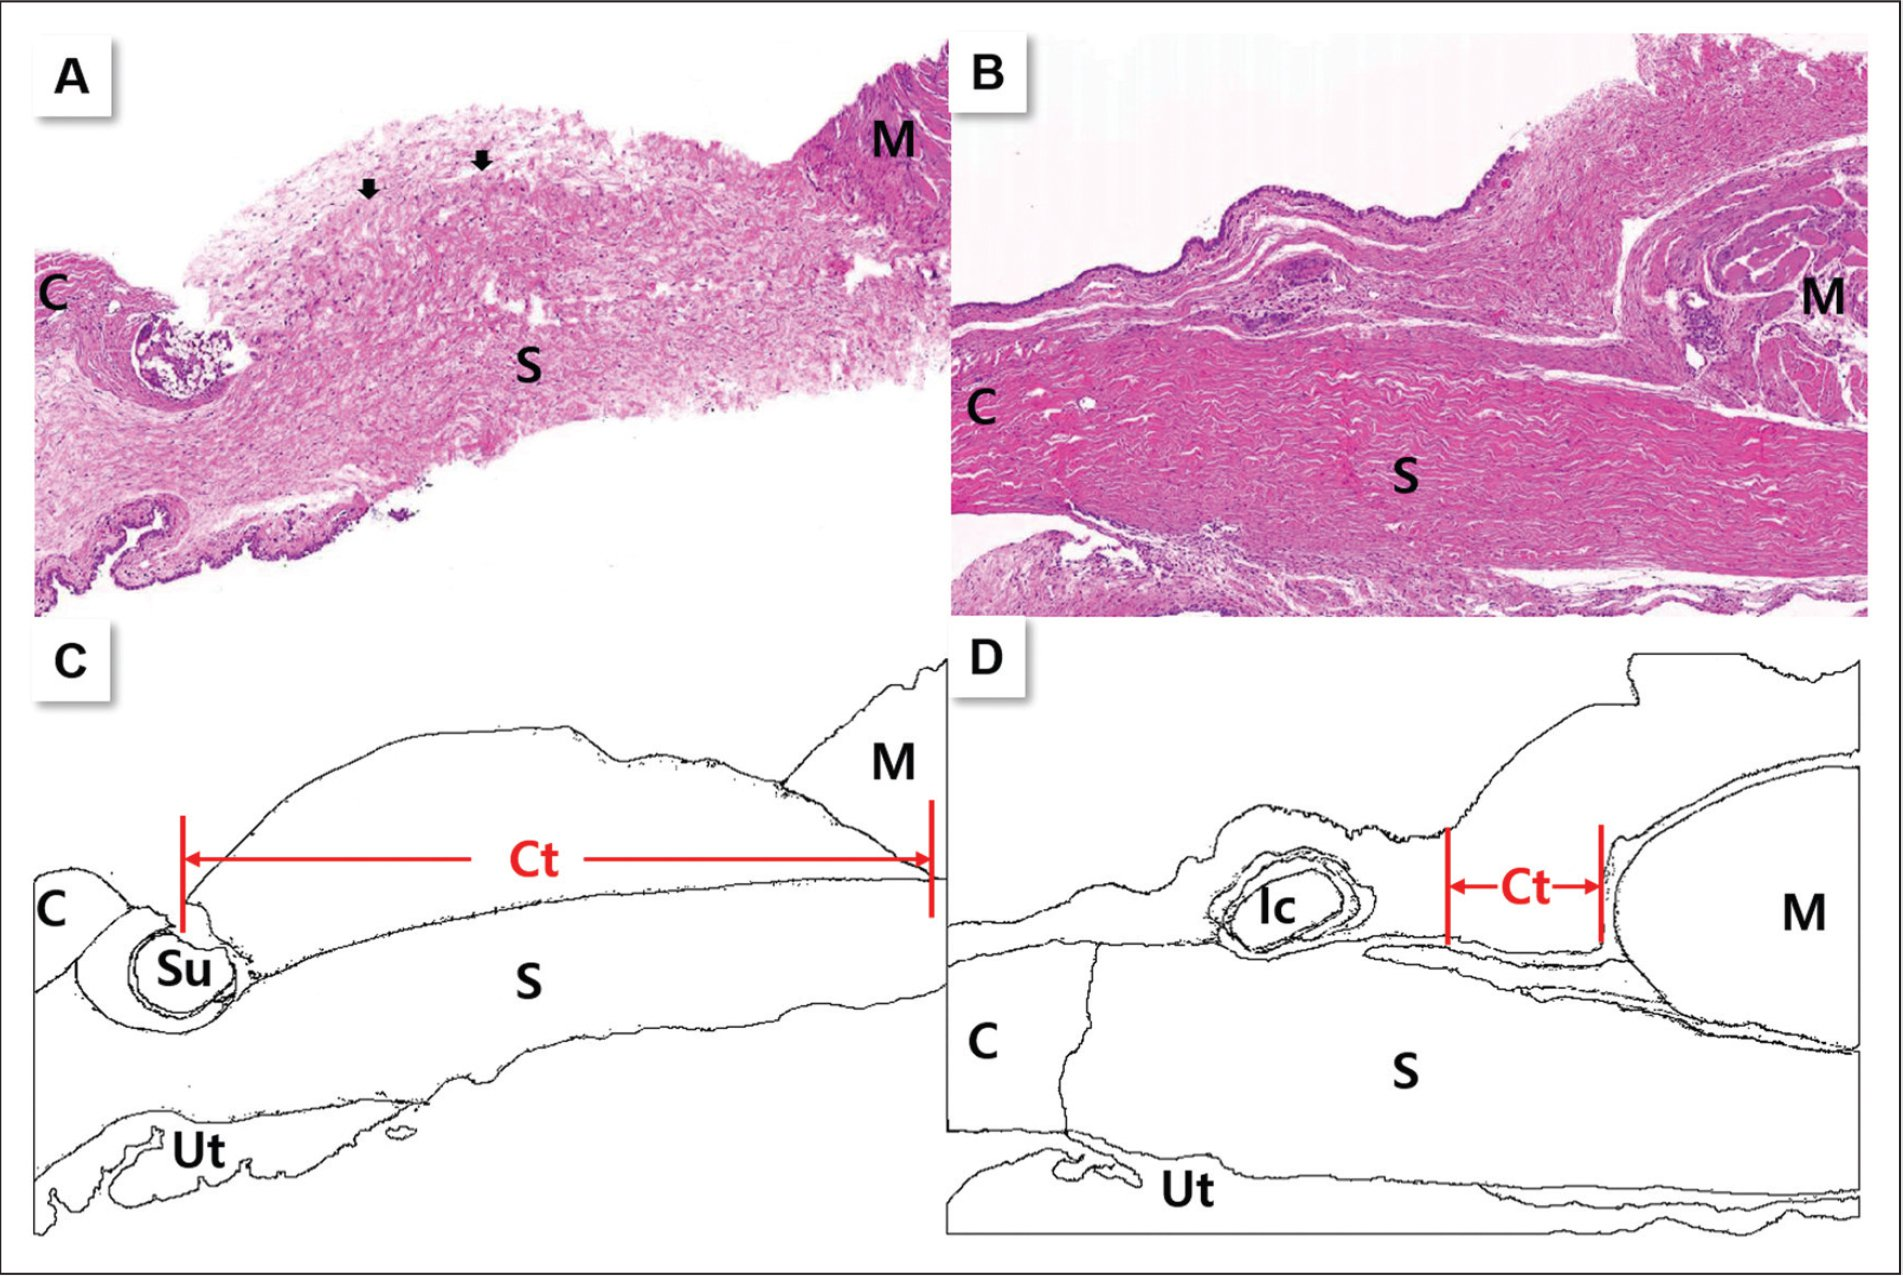 Representative histologic findings with hematoxylin–eosin staining (original magnification ×20) at postoperative week 4 in the (A) residual muscle stump group and (B) control group. (C–D) Schematized diagrams show the orientation. The residual muscle stump group showed a space that was filled with connective tissue in front of the superior rectus muscle (arrowhead) in comparison to the control group. C = cornea; S = sclera; M = extraocular muscle; Ct = connective tissue; Su = suture material; Ic = inflammatory cells; Ut = uveal tract